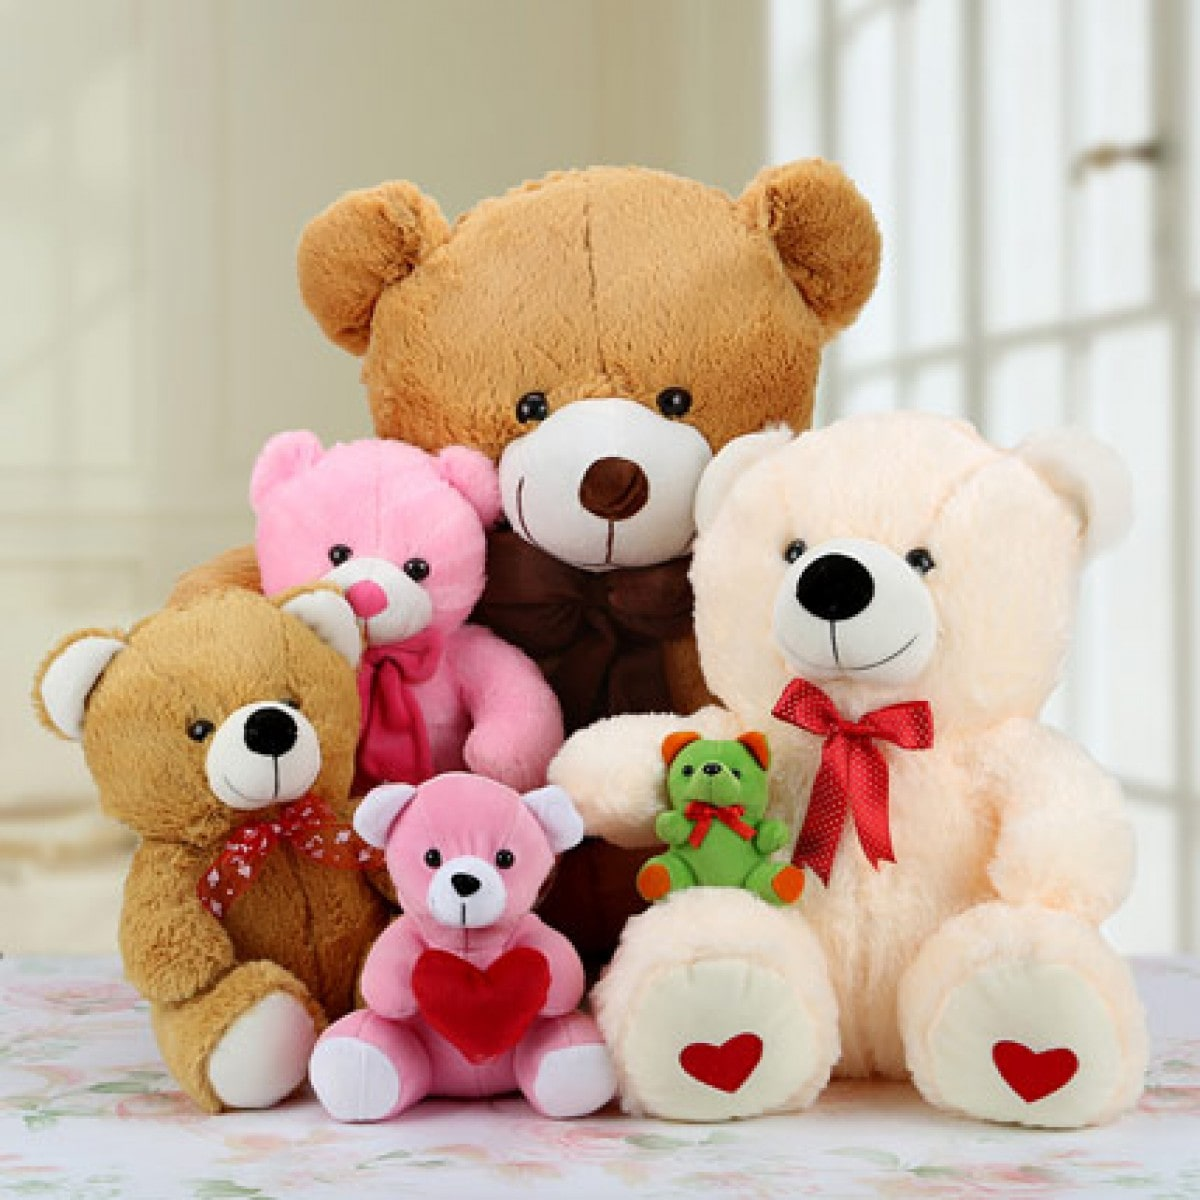 Teddy bear wholesale material, manufacturing, history- details